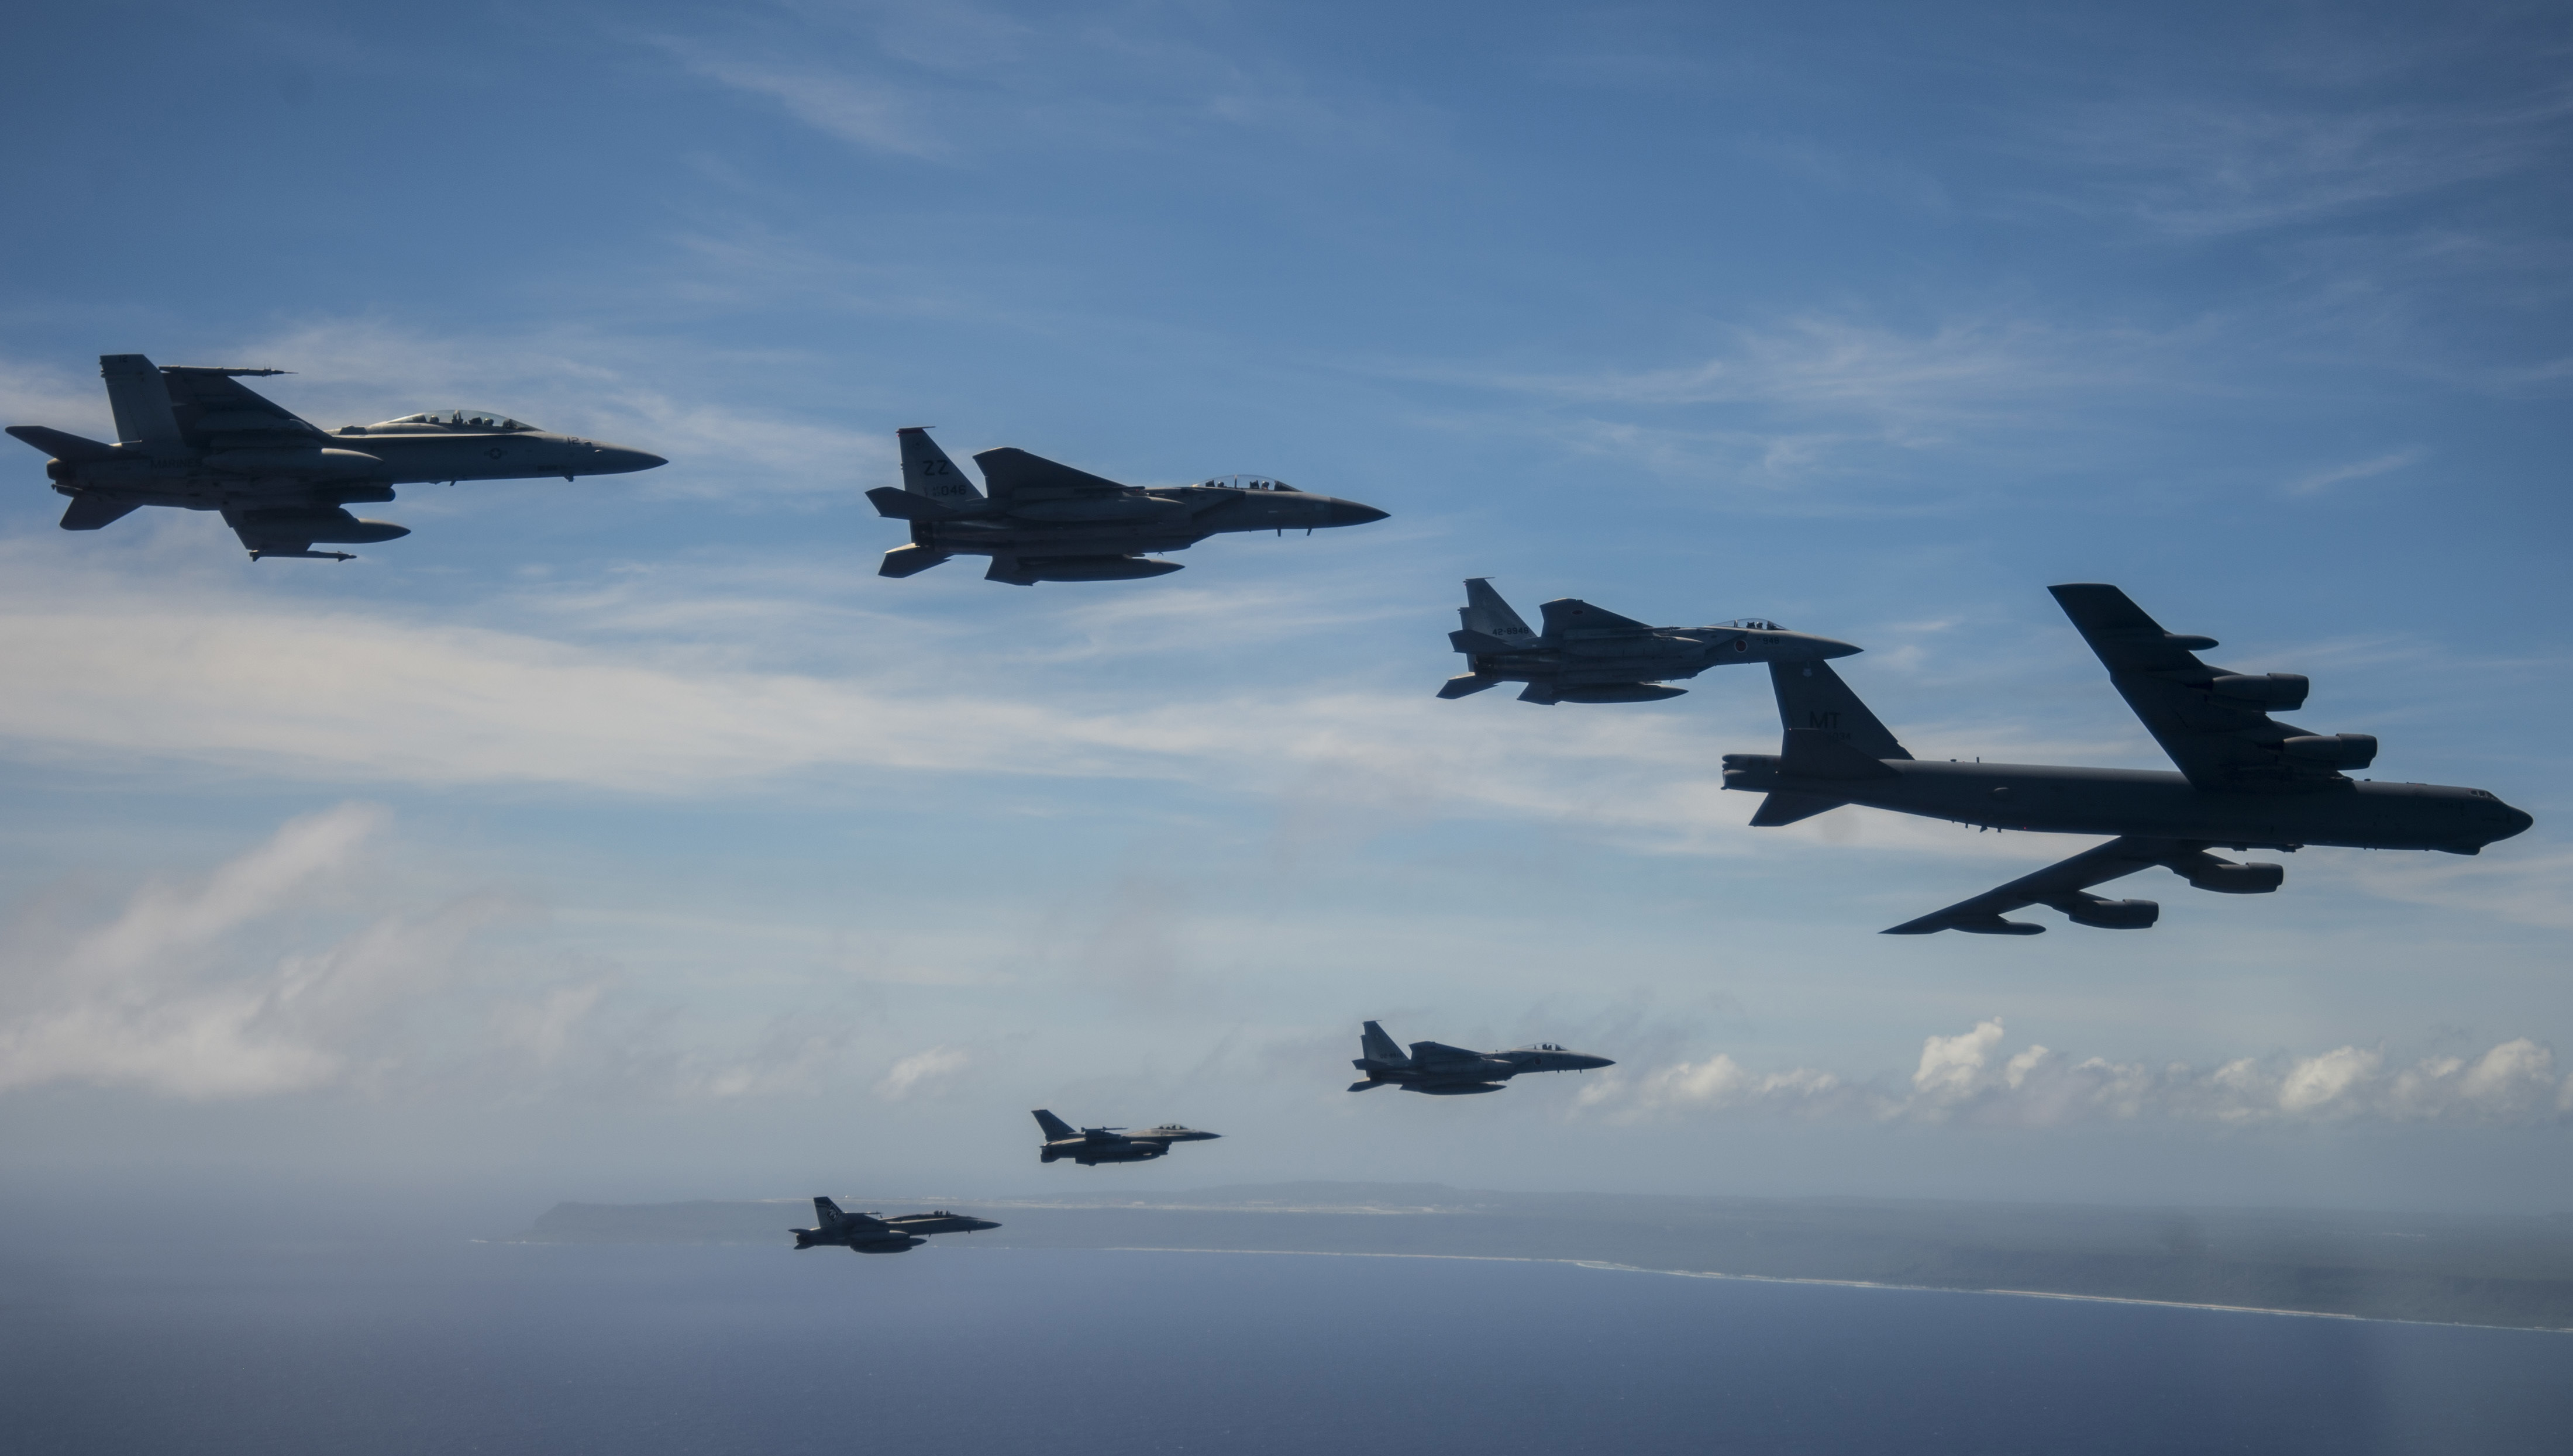 COPE North 19 alliance demonstrates combat airpower